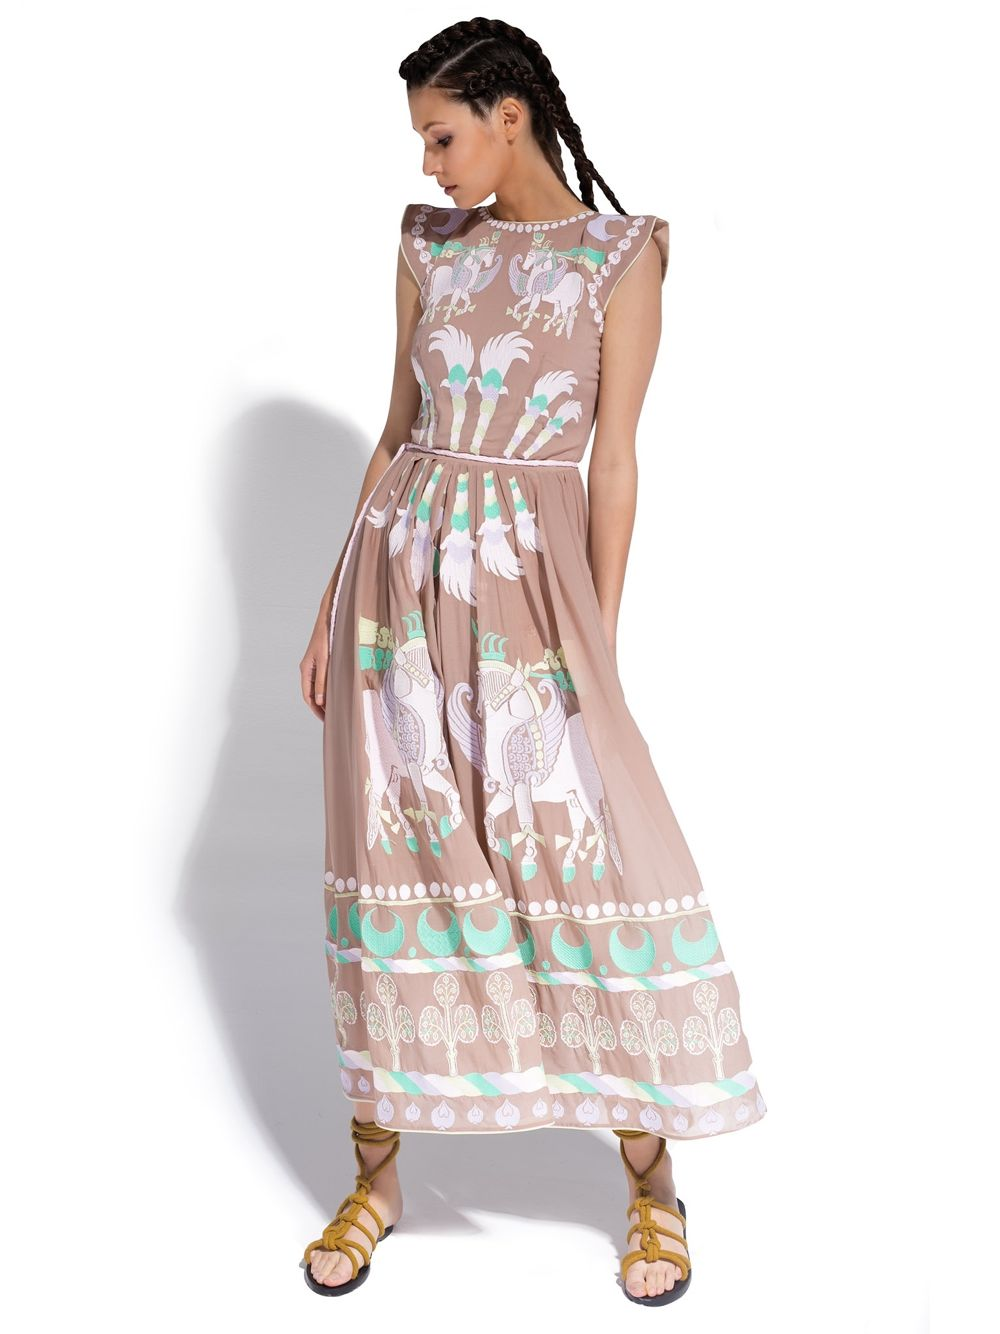 Sik Dress 'DAY SPRING HORSE'